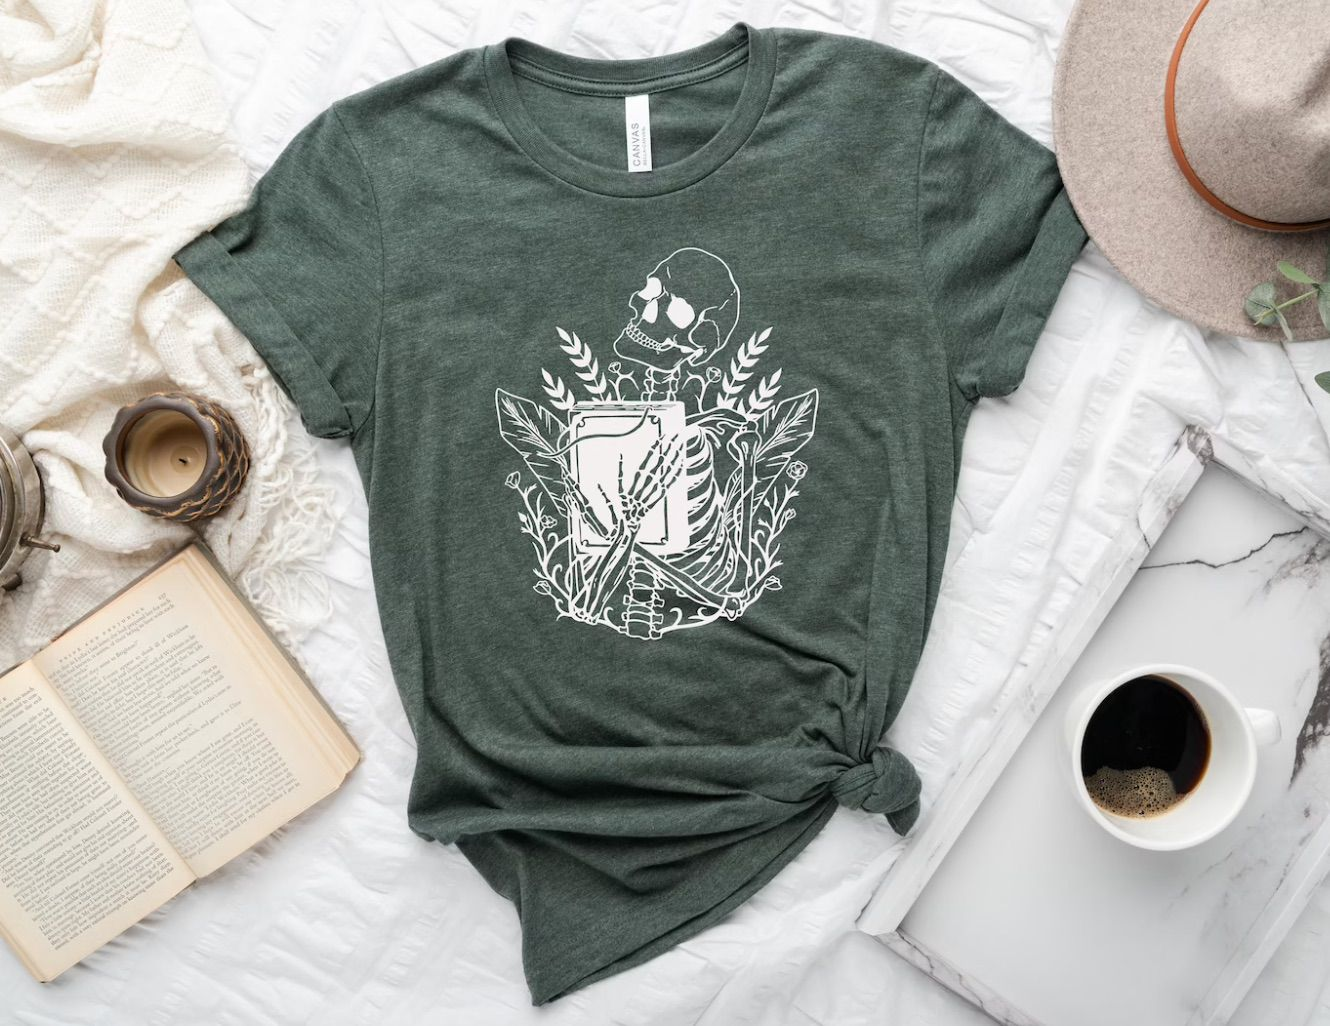 Heather gray t-shirt with a white skull hugging a book.